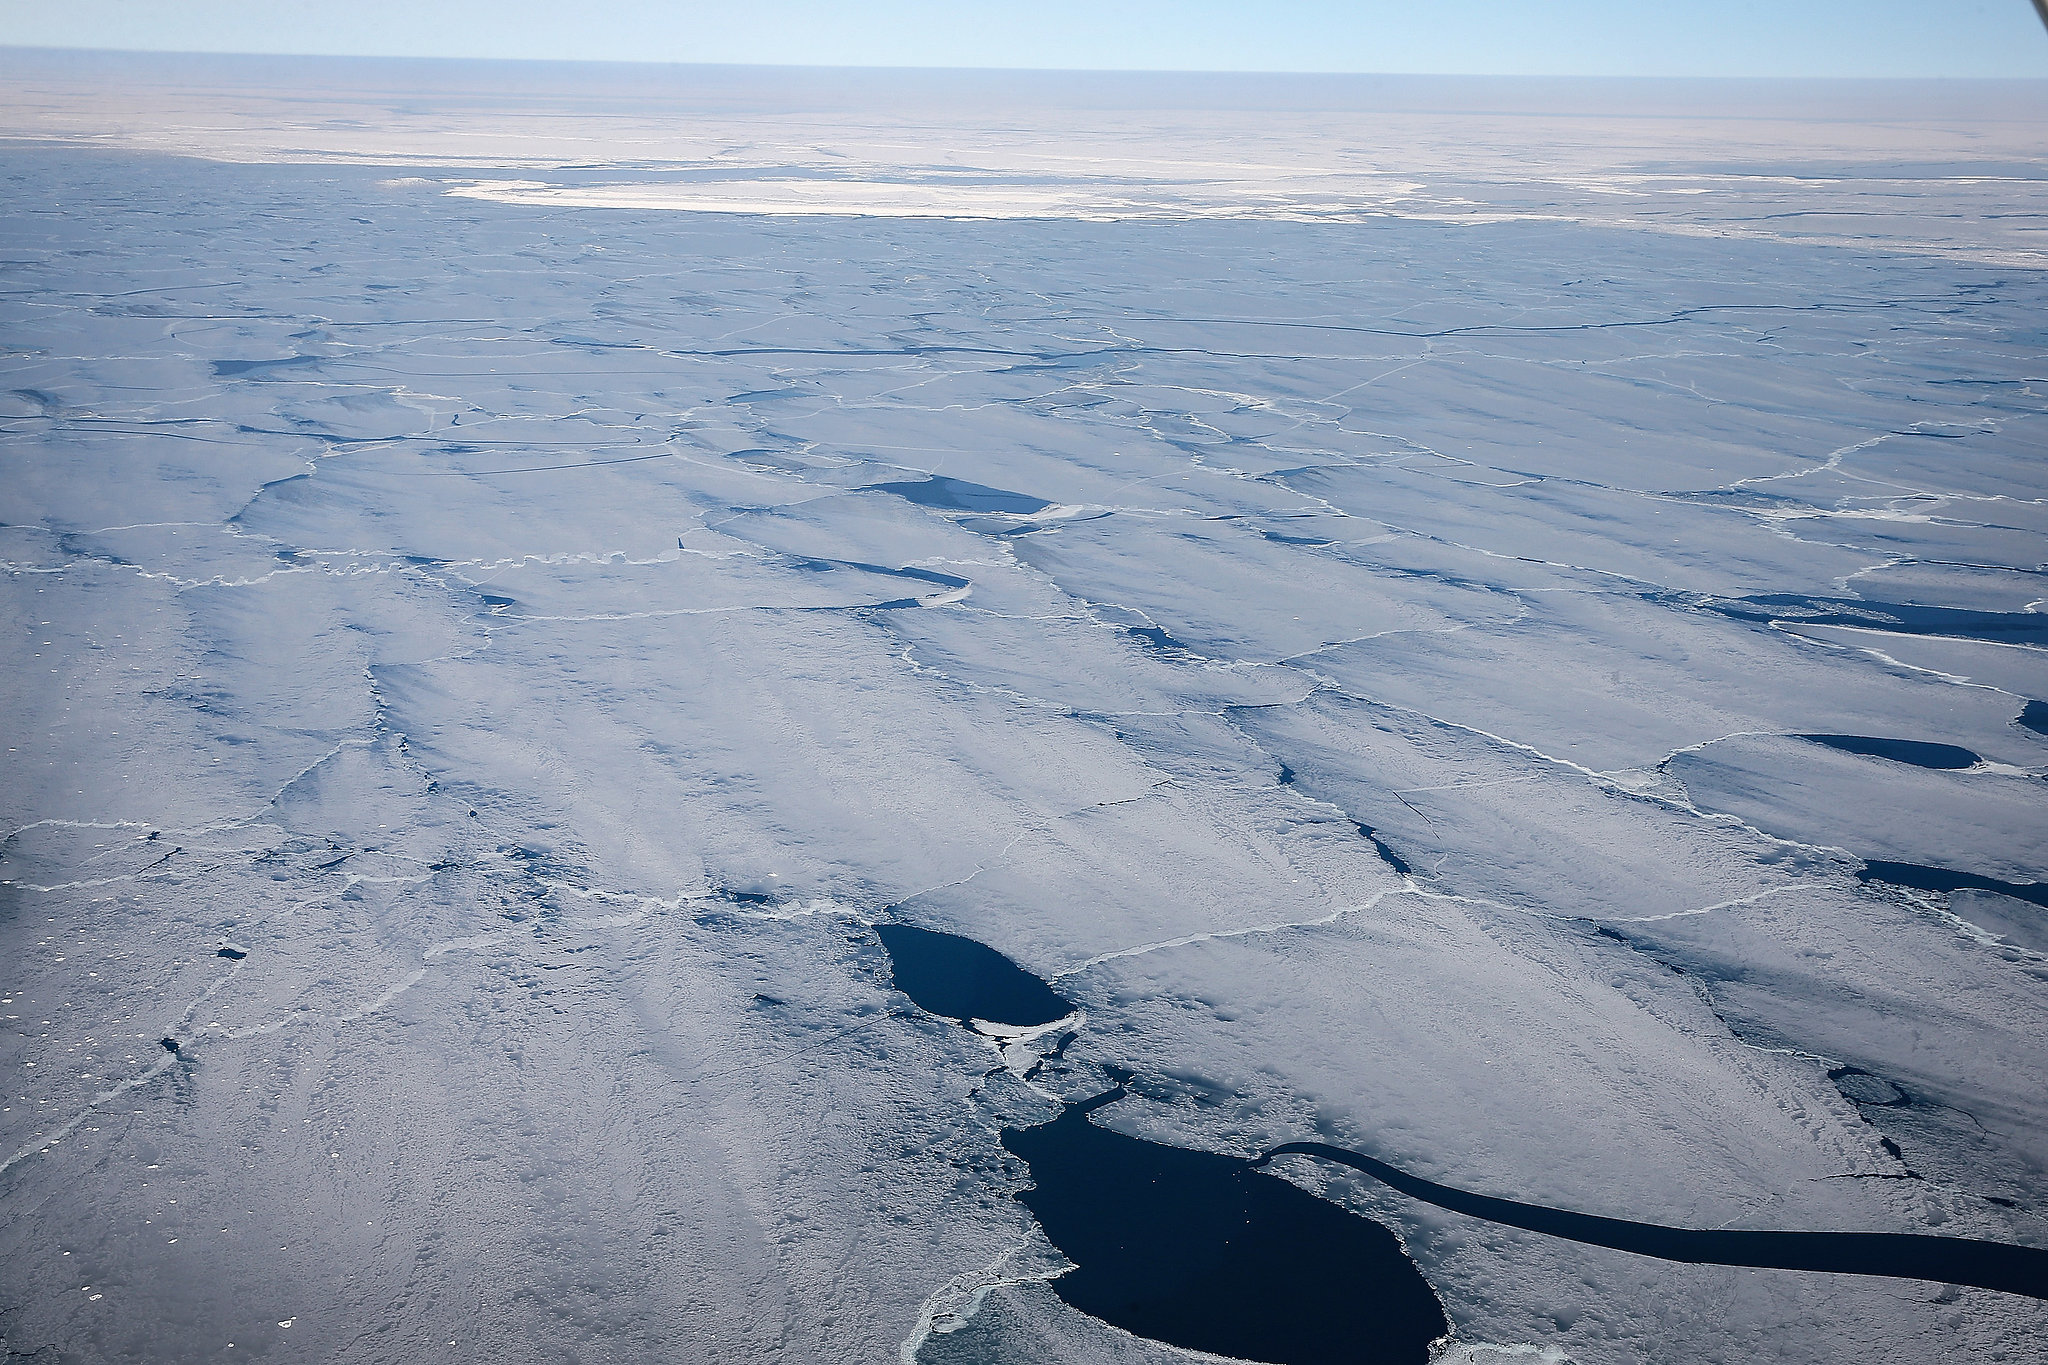 More than 80 percent of Lake Michigan is covered in ice.